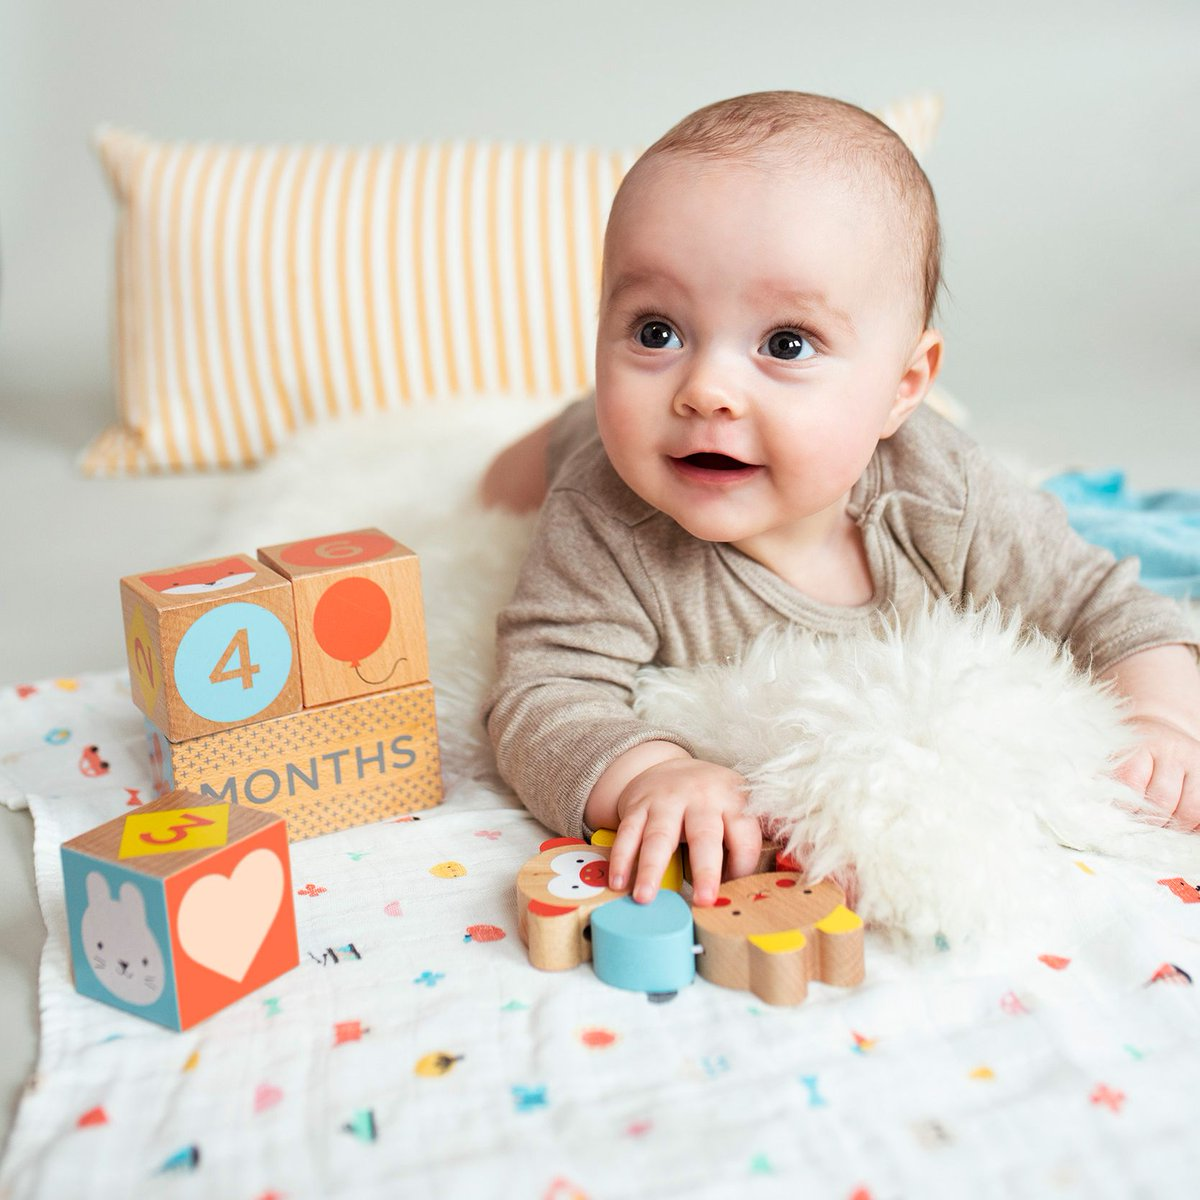 Today I'm this old! Commemorate the milestones of your growing child with these eco-friendly Wooden Baby Milestone Blocks from @petitcollage! : https://bit.ly/3bonFDi  : https://bit.ly/2vKMOccpic.twitter.com/jGQeMYPcU0